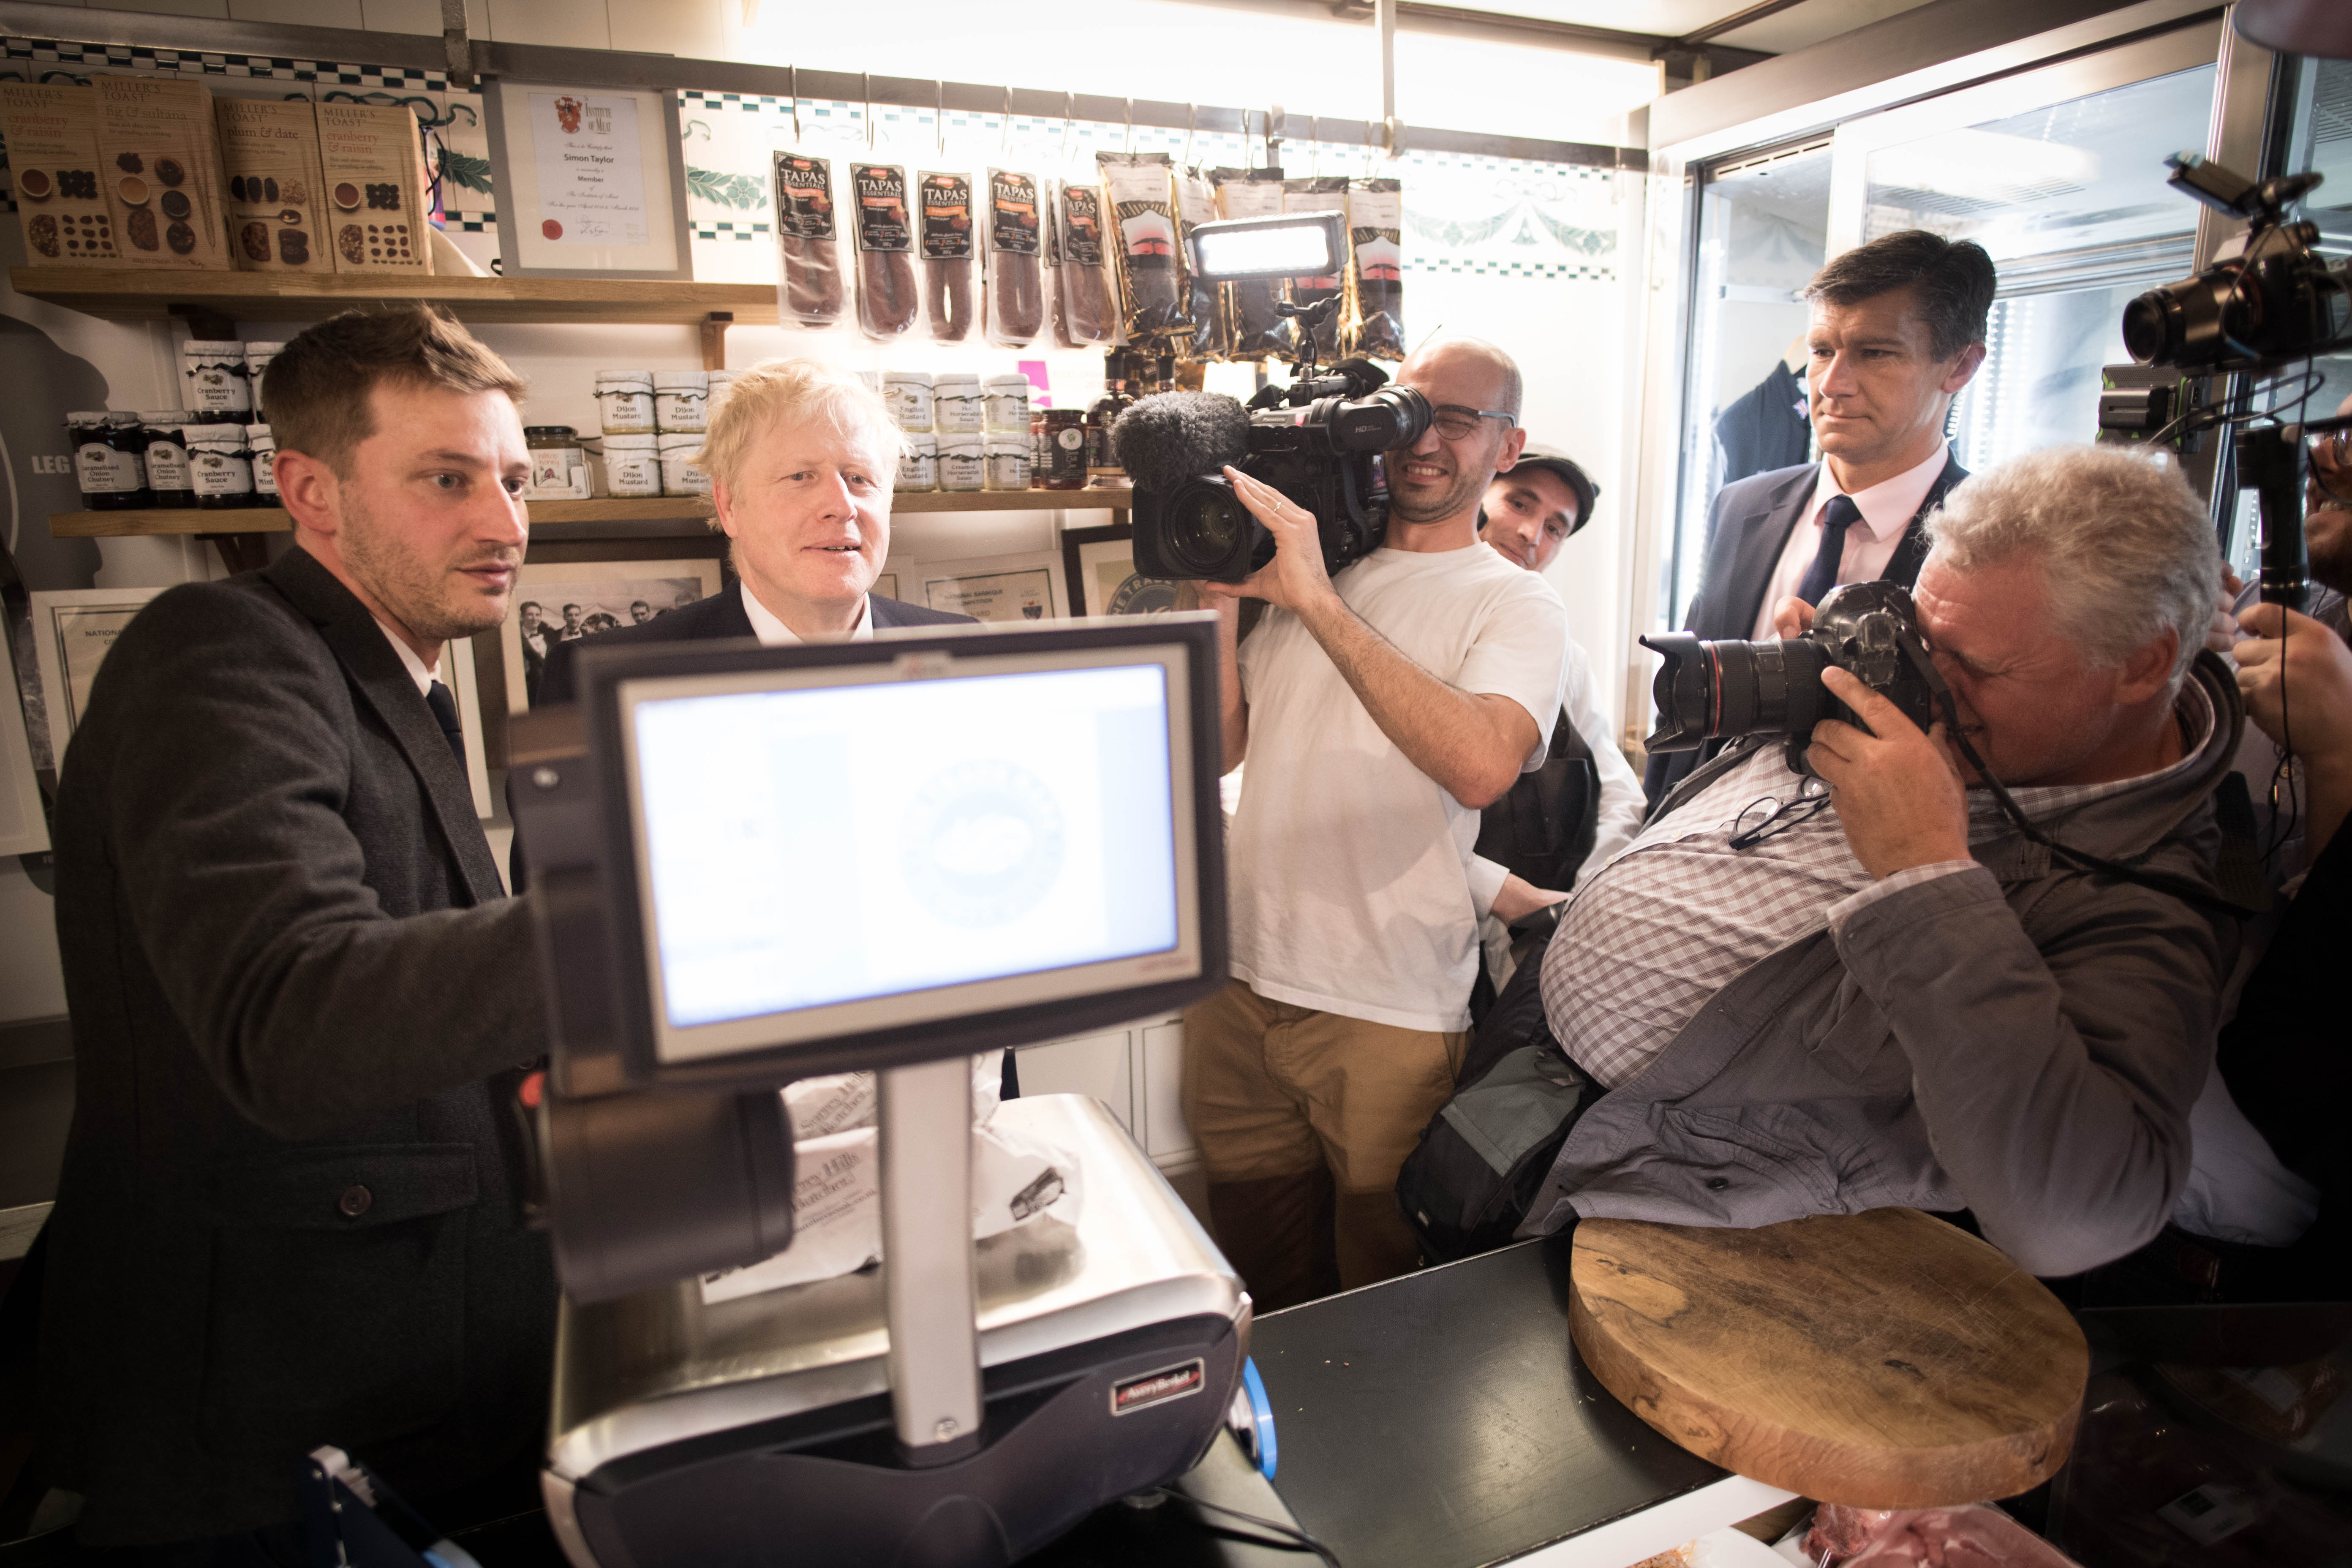 Conservative party leadership candidate Boris Johnson (second left) weighs some produce in the Surrey Hills Butchers in Oxshott, Surrey.